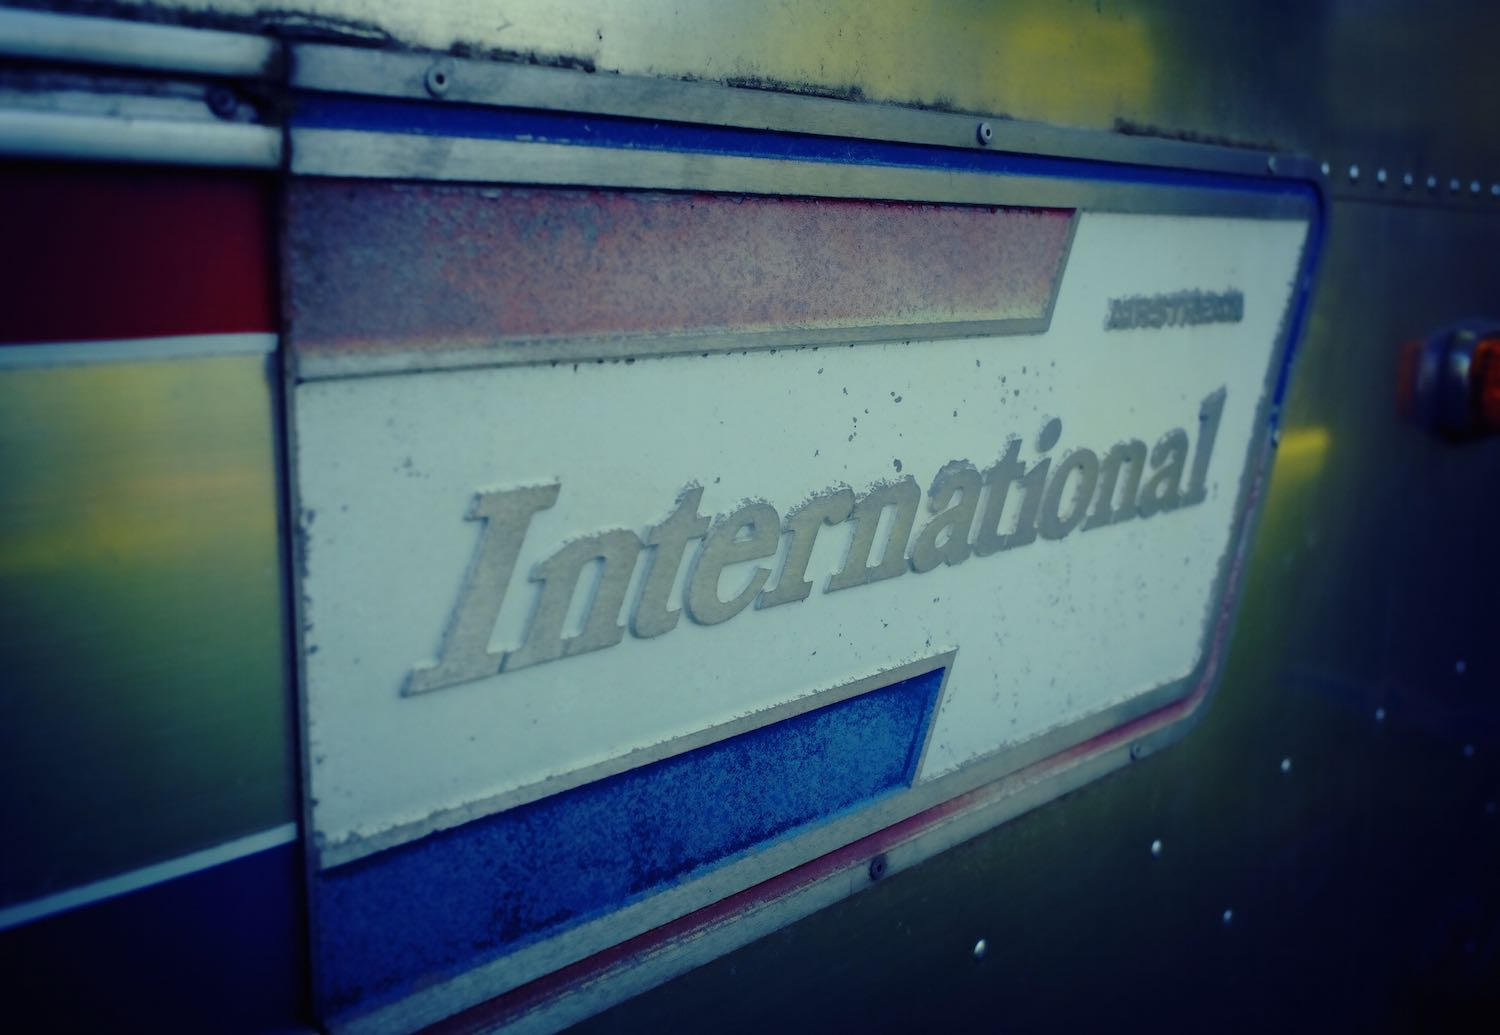 A view of our Airstream International Land Yacht emblem.